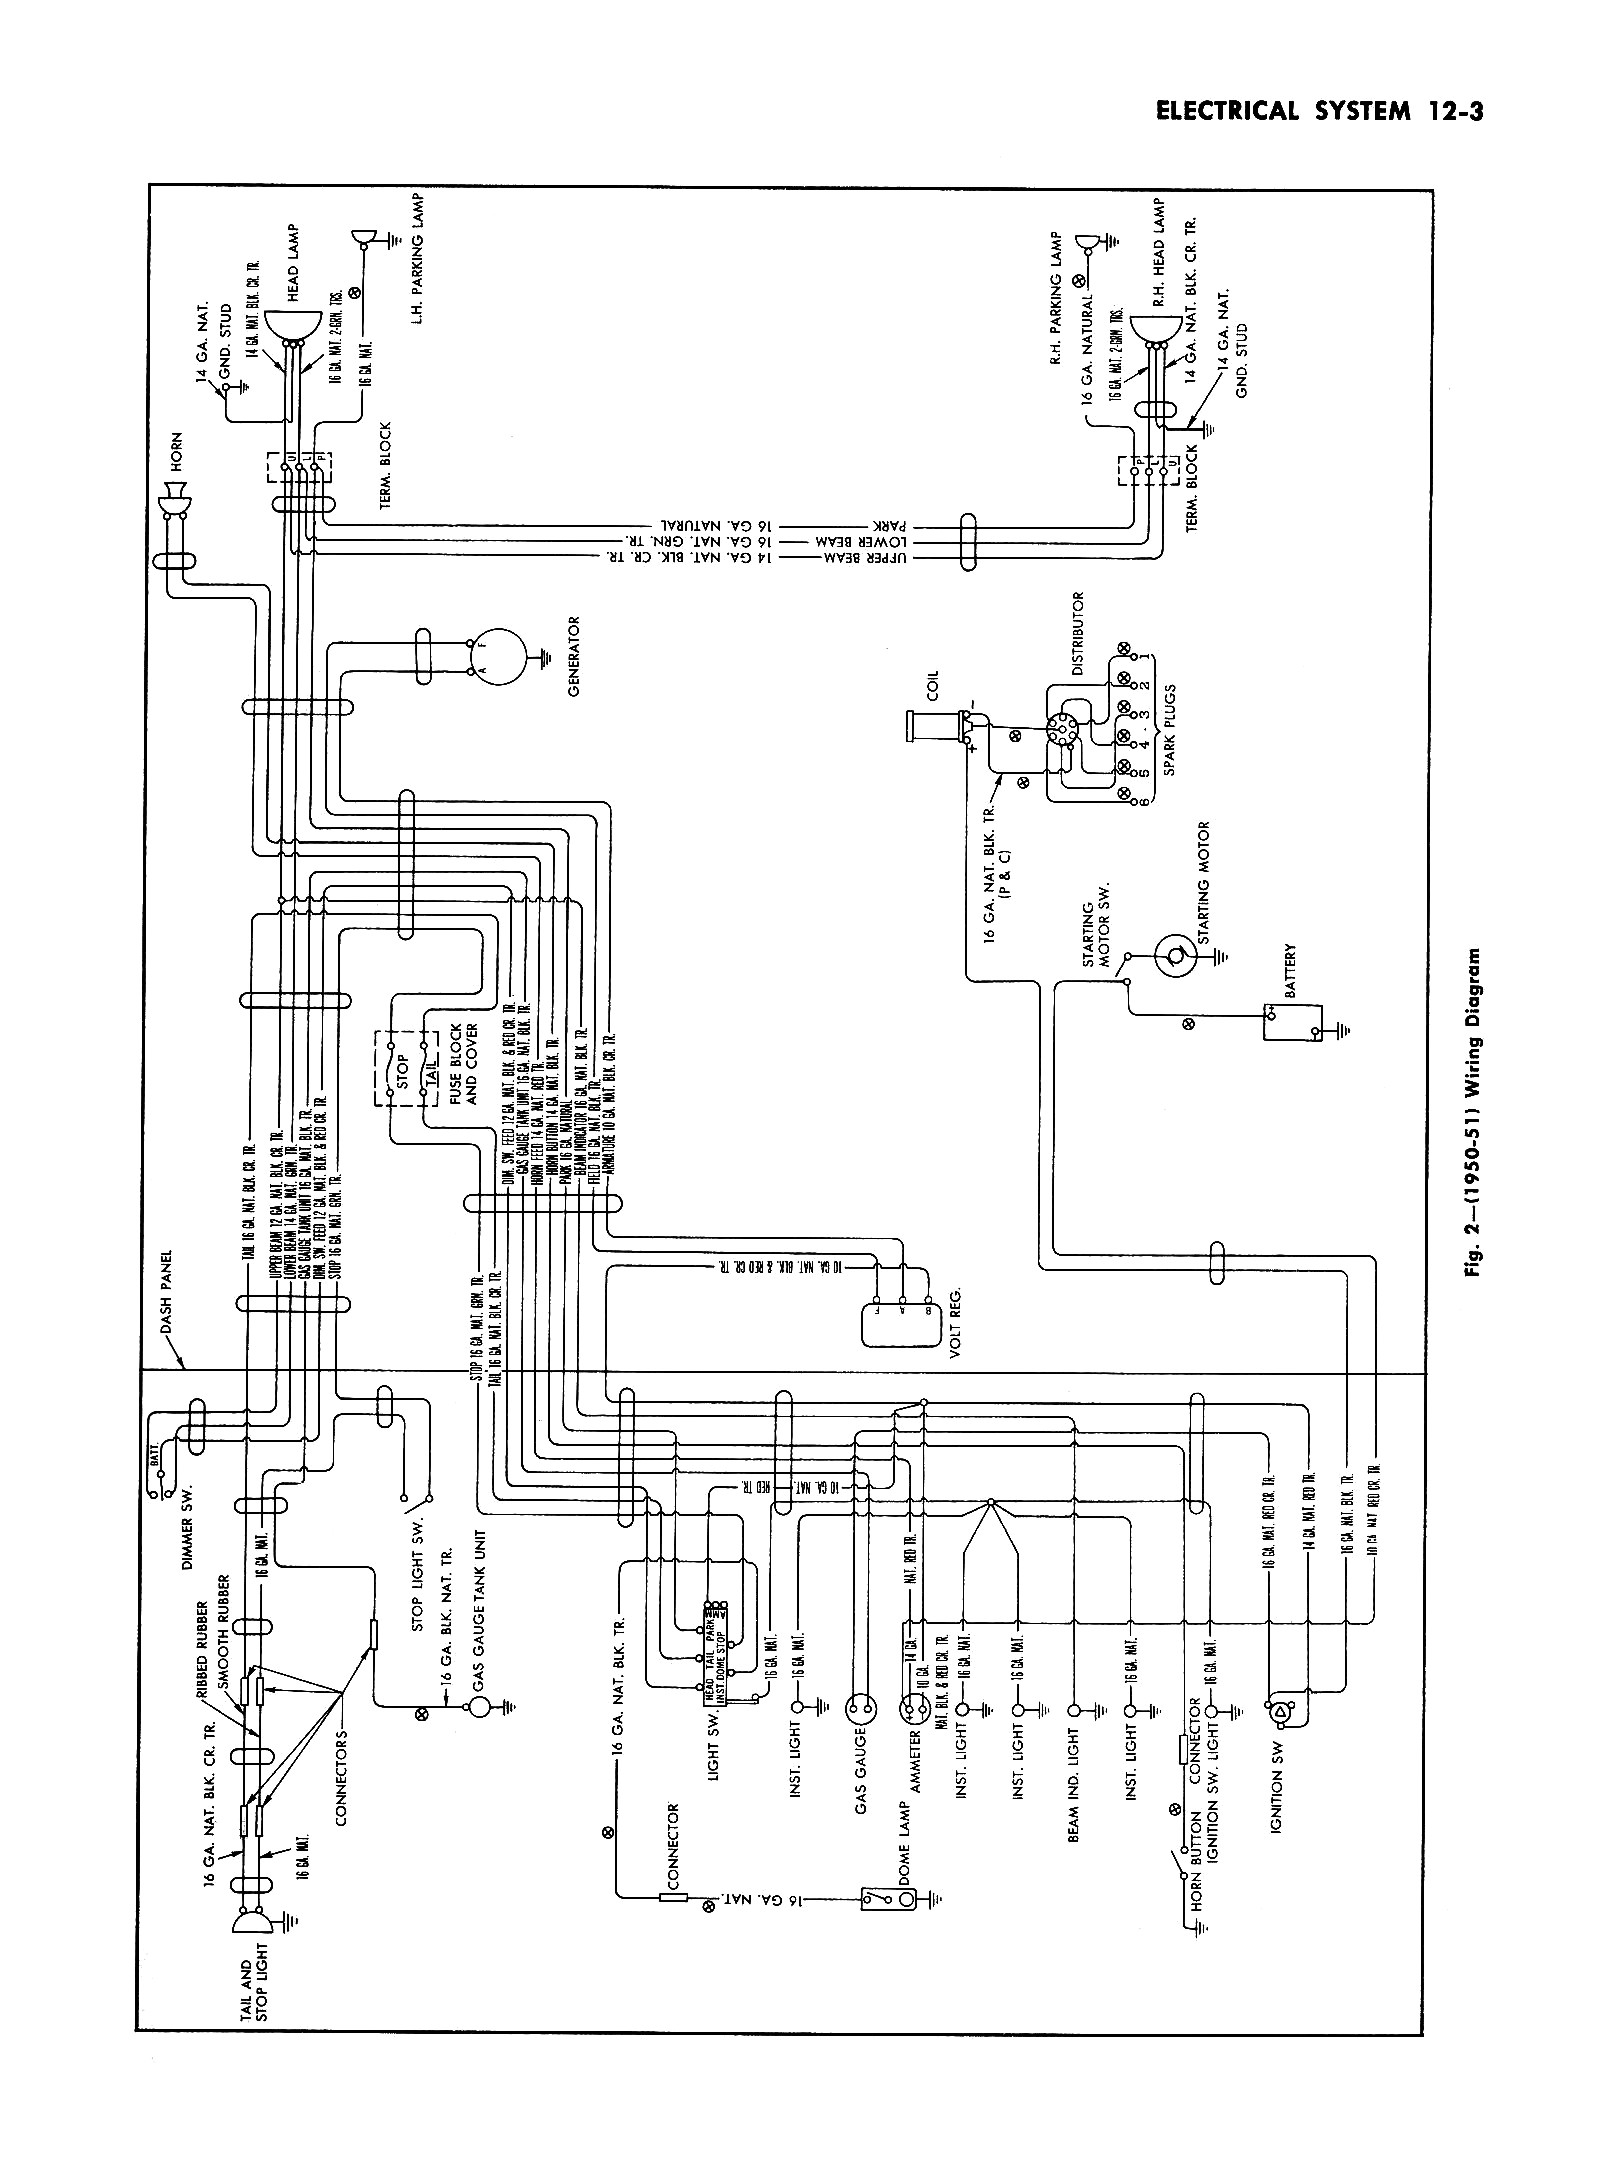 1957 chevy wiring harness diagram for horn